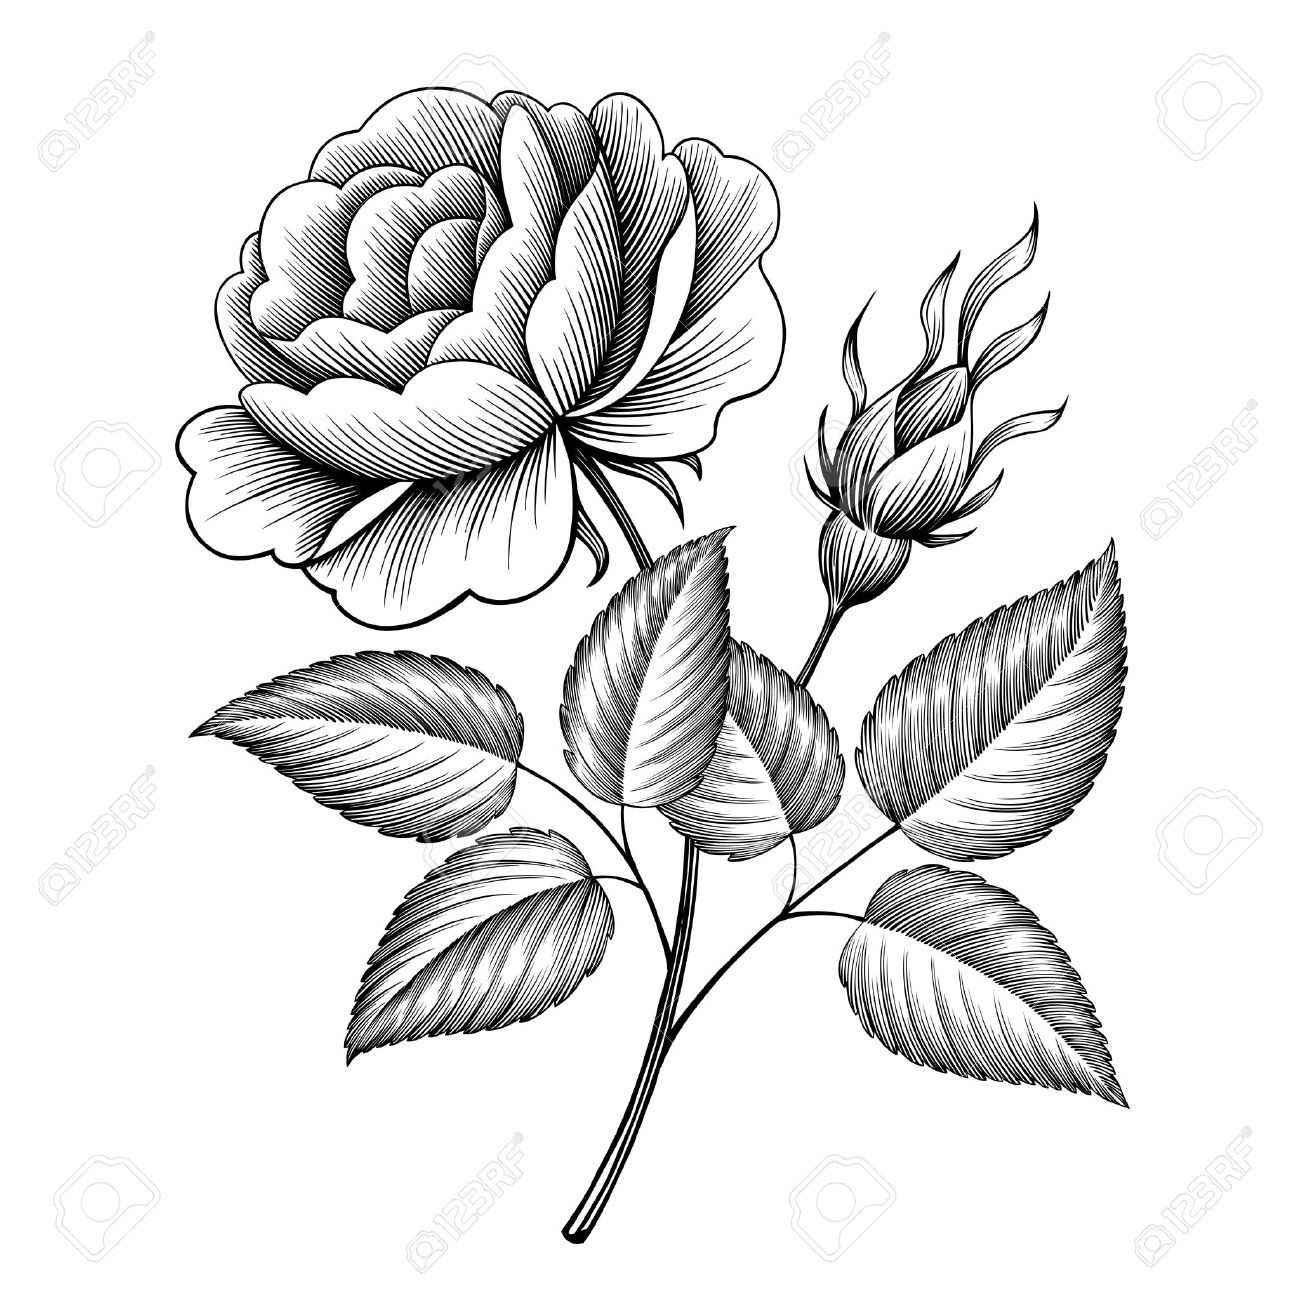 Vintage Rose Flower Engraving Calligraphic Victorian Style Tattoo